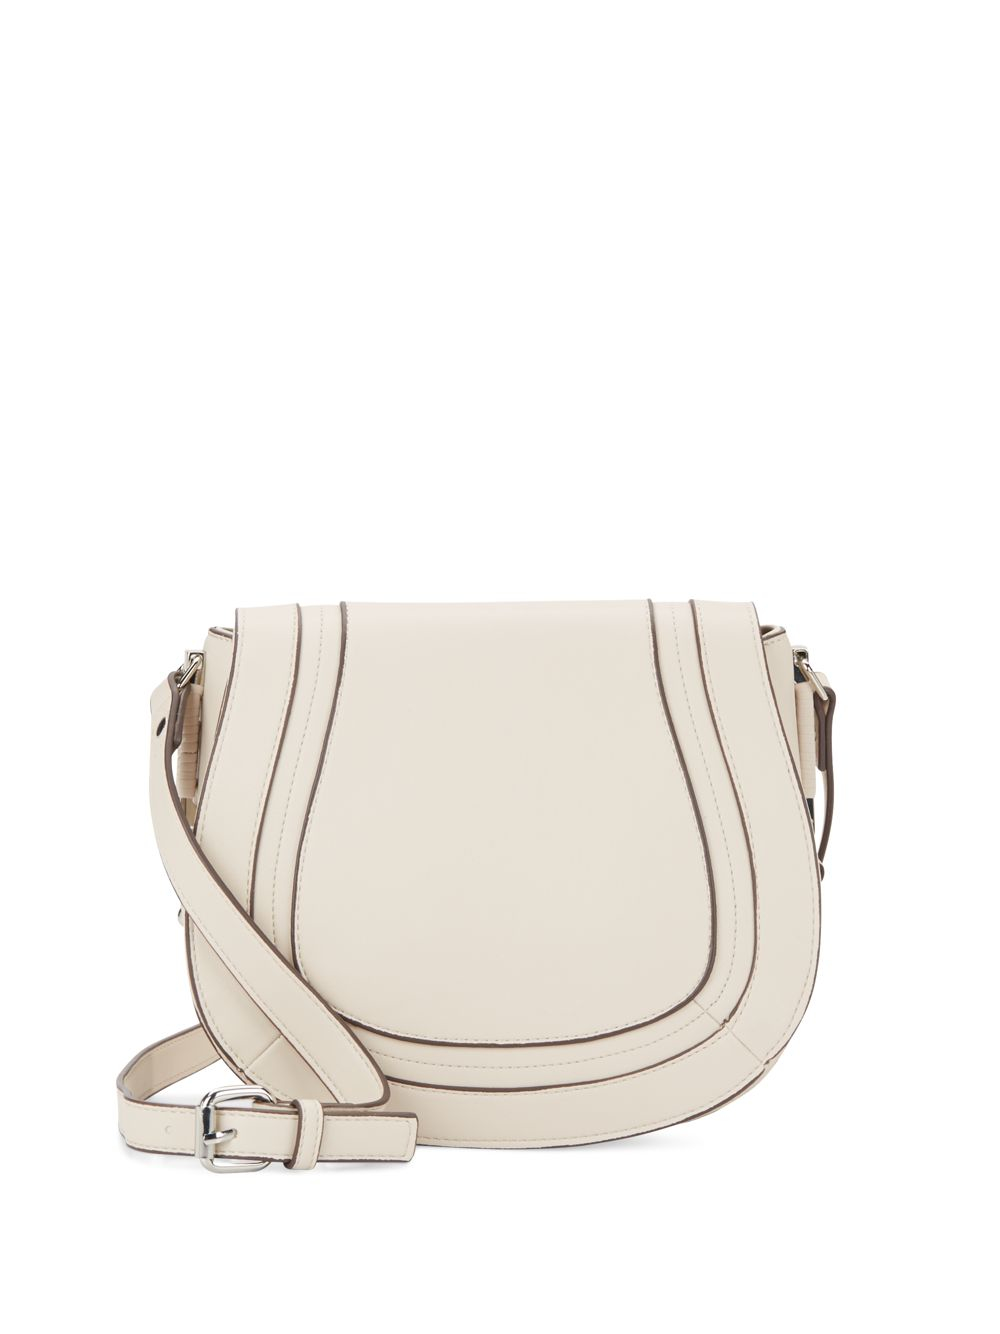 c91c60dab French Connection Liza Faux Leather Crossbody Saddle Bag in White - Lyst